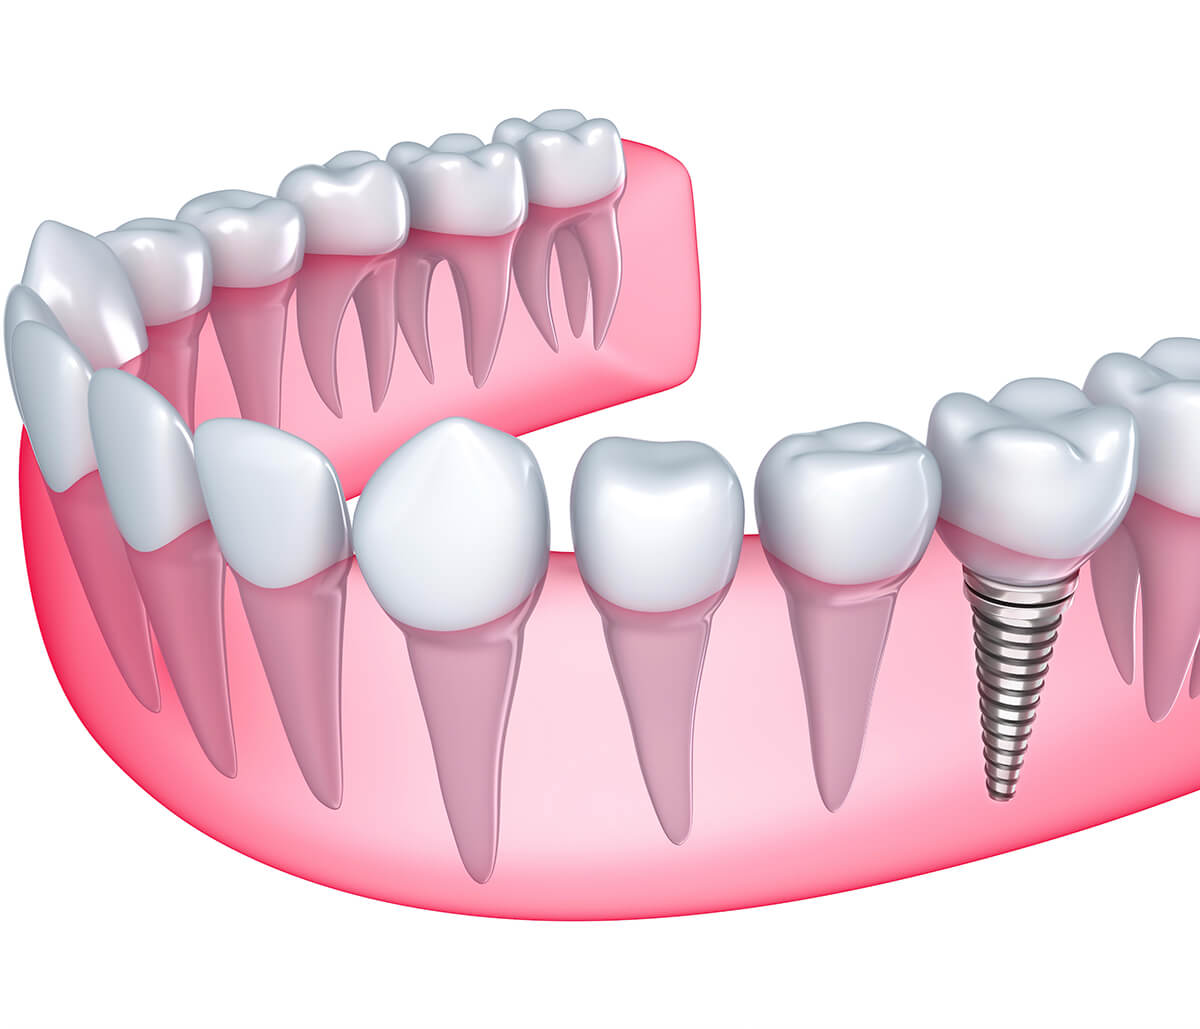 Replace Your Missing Teeth with Dental Implants Treatment in Yadkinville Area